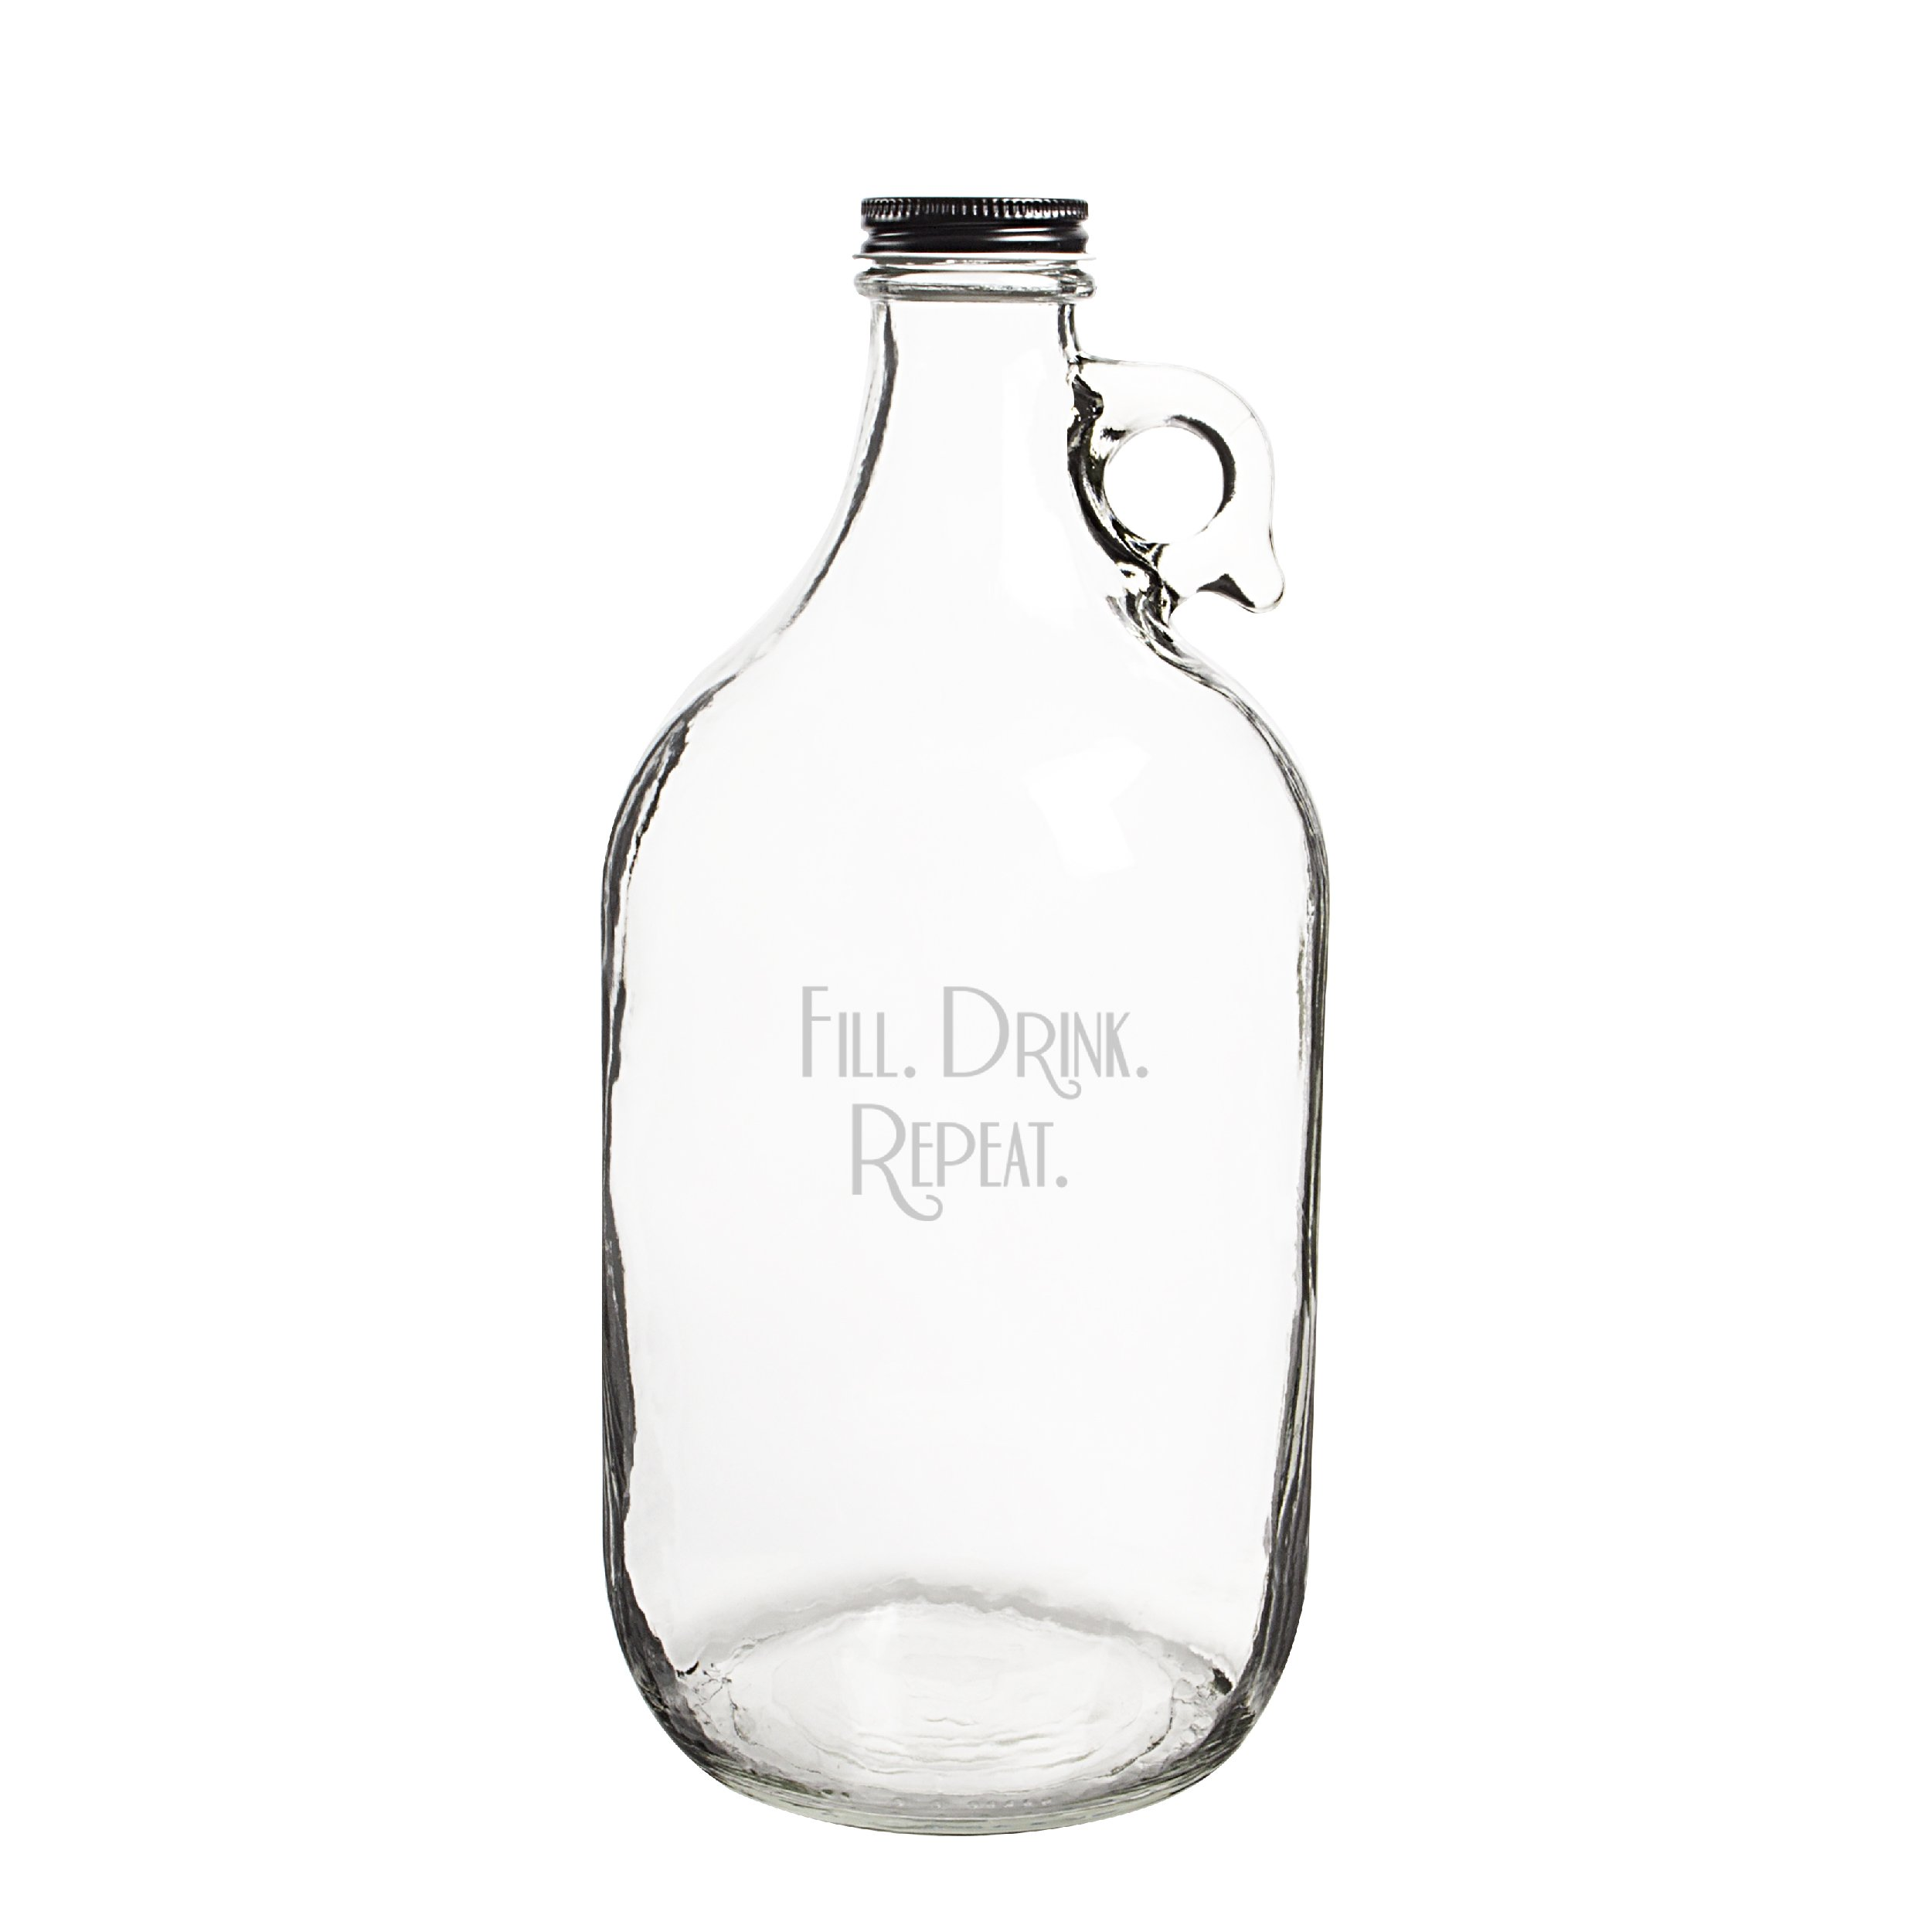 Cathy's Concepts''Fill. Drink. Repeat.'' Craft Beer Growler, Clear